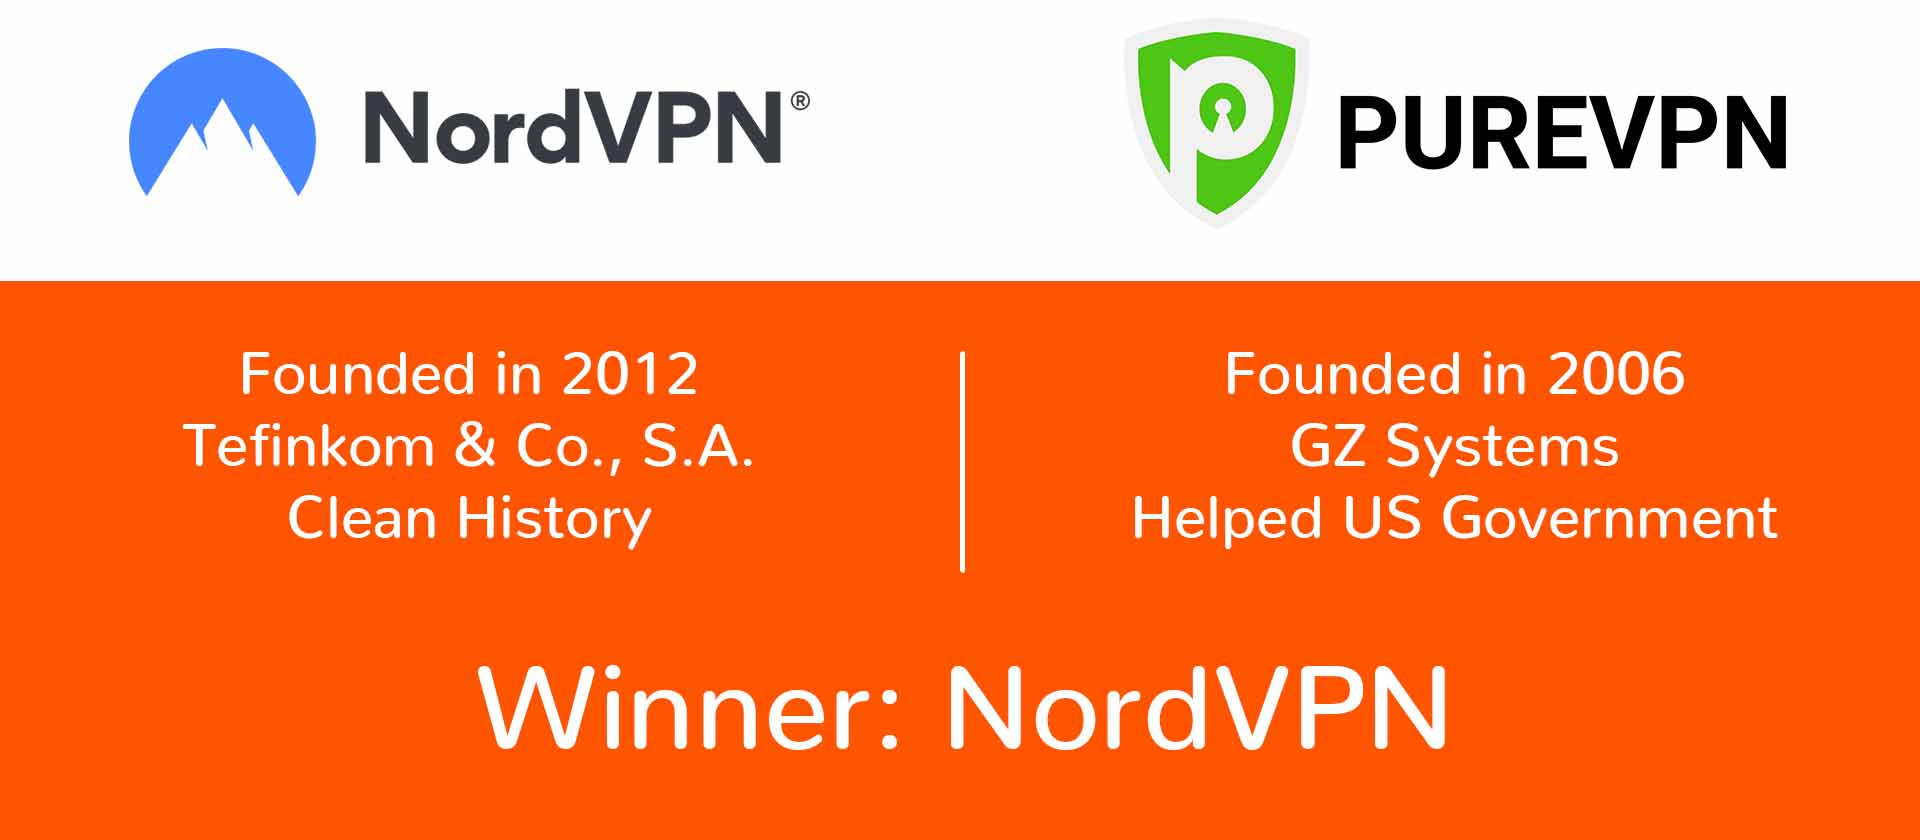 NordVPN and PureVPN business history